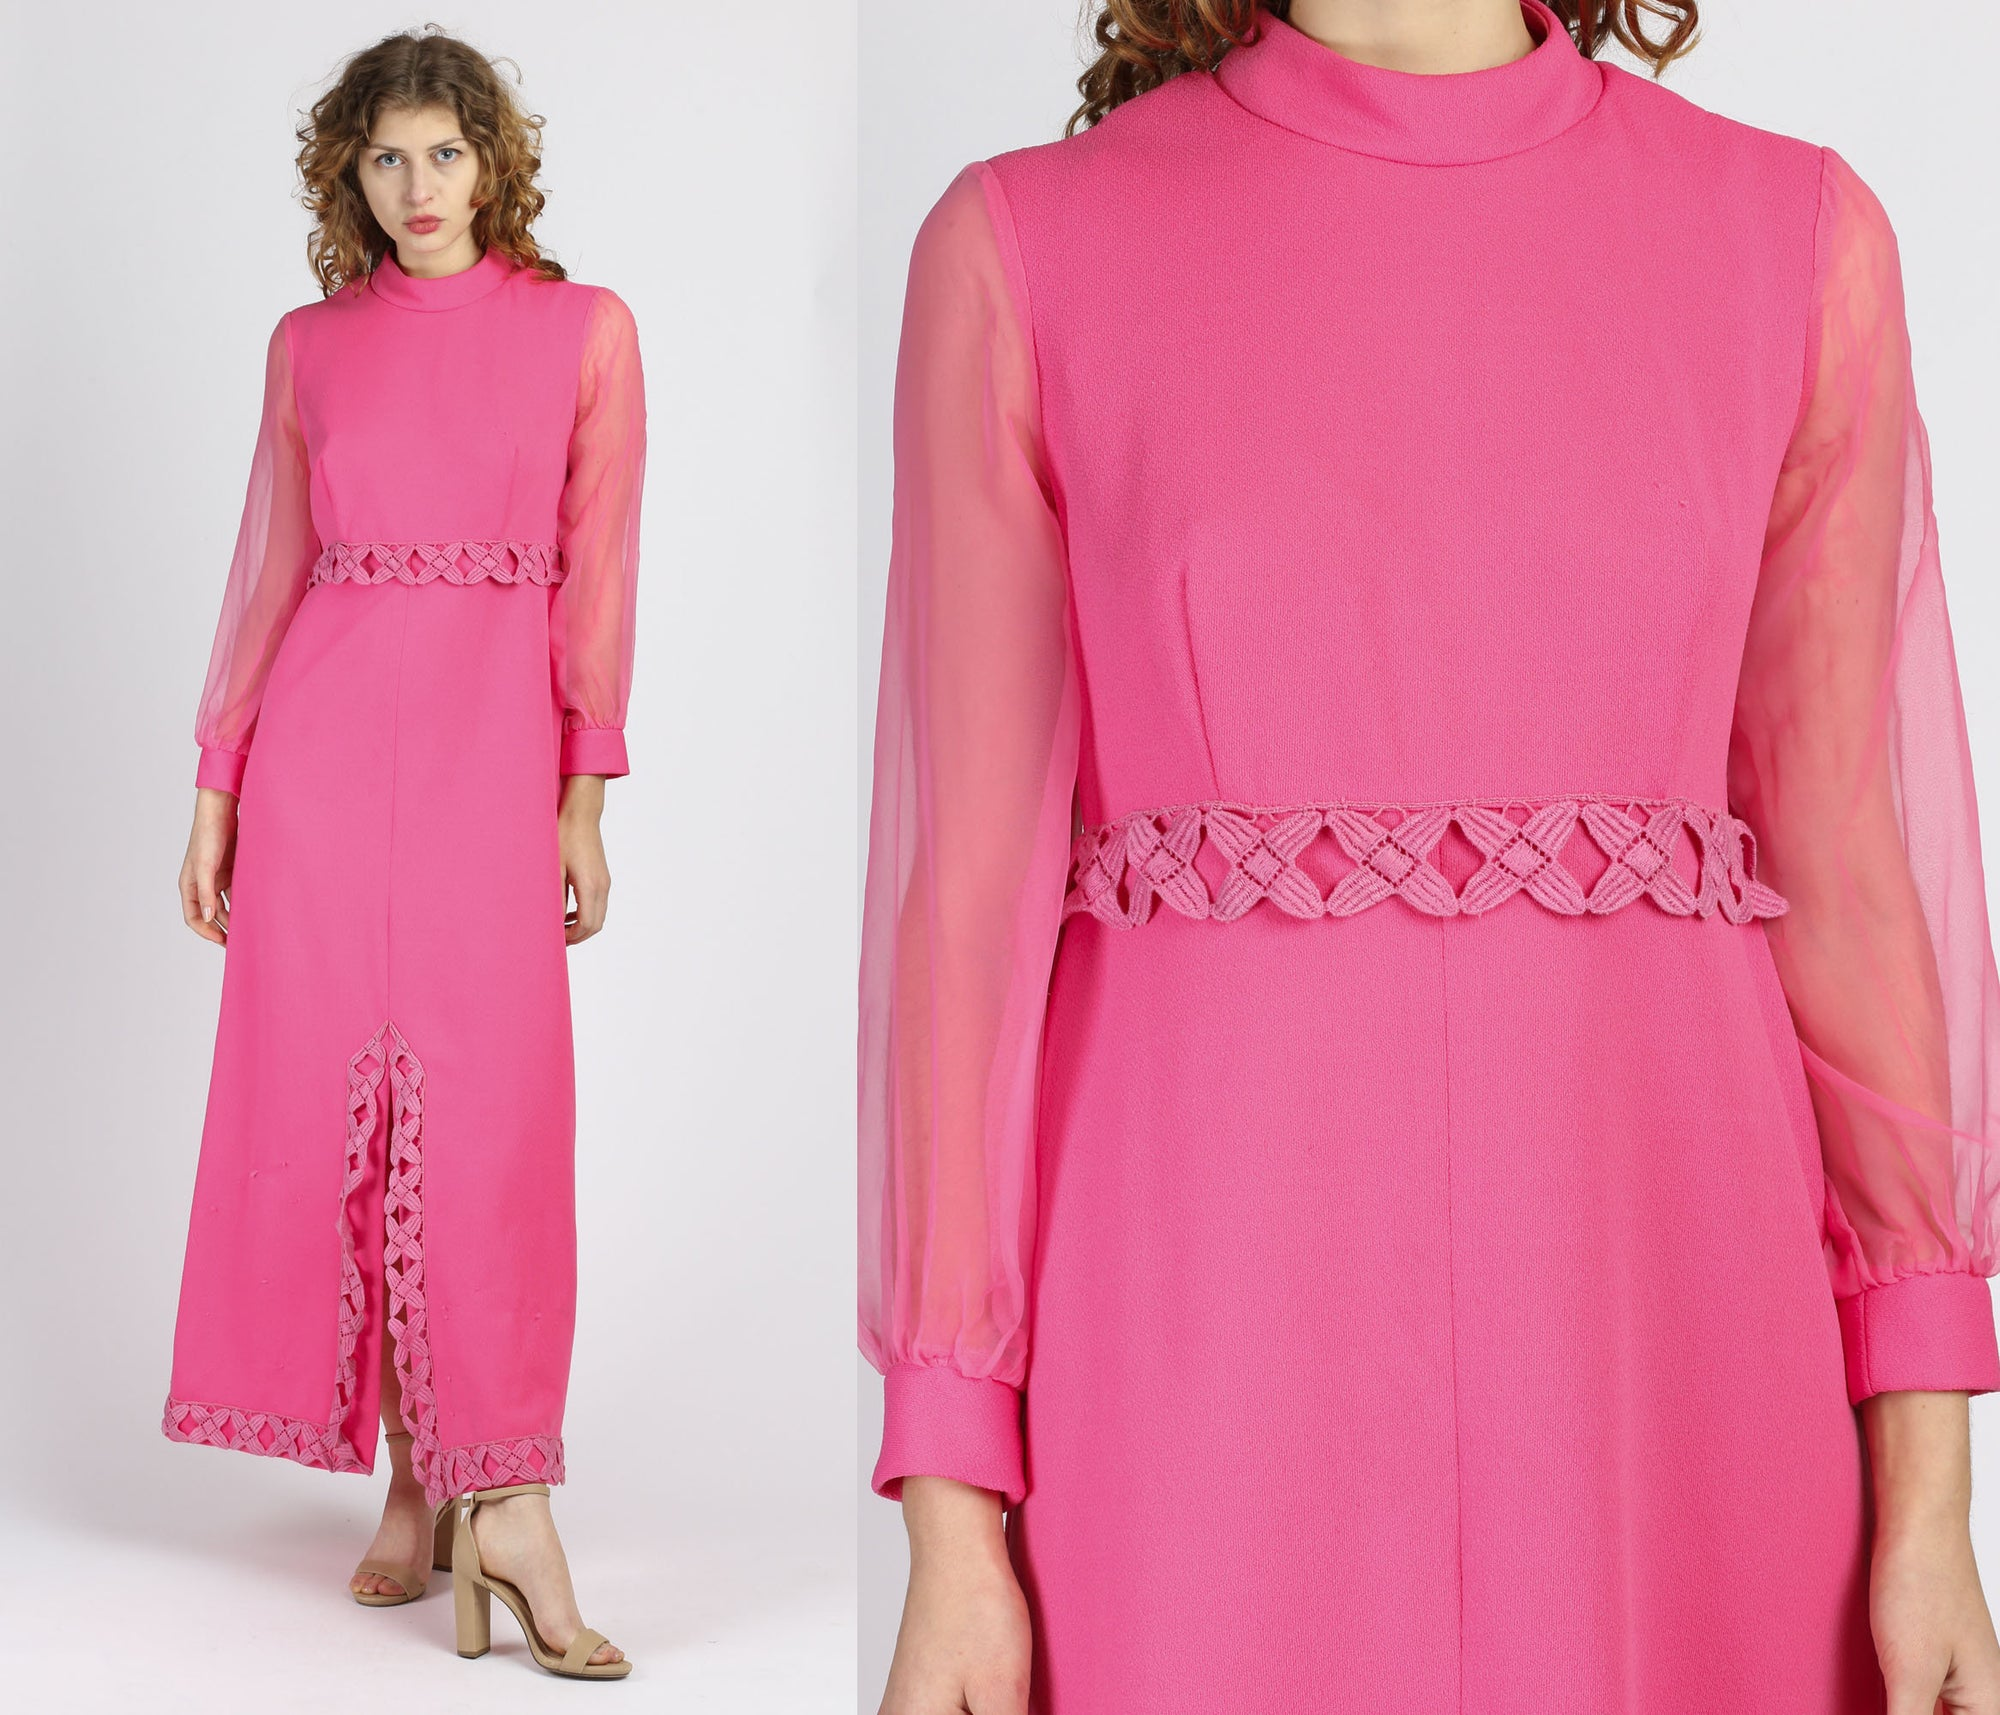 70s Pink Crochet Trim Sheer Sleeve Maxi Dress - Medium